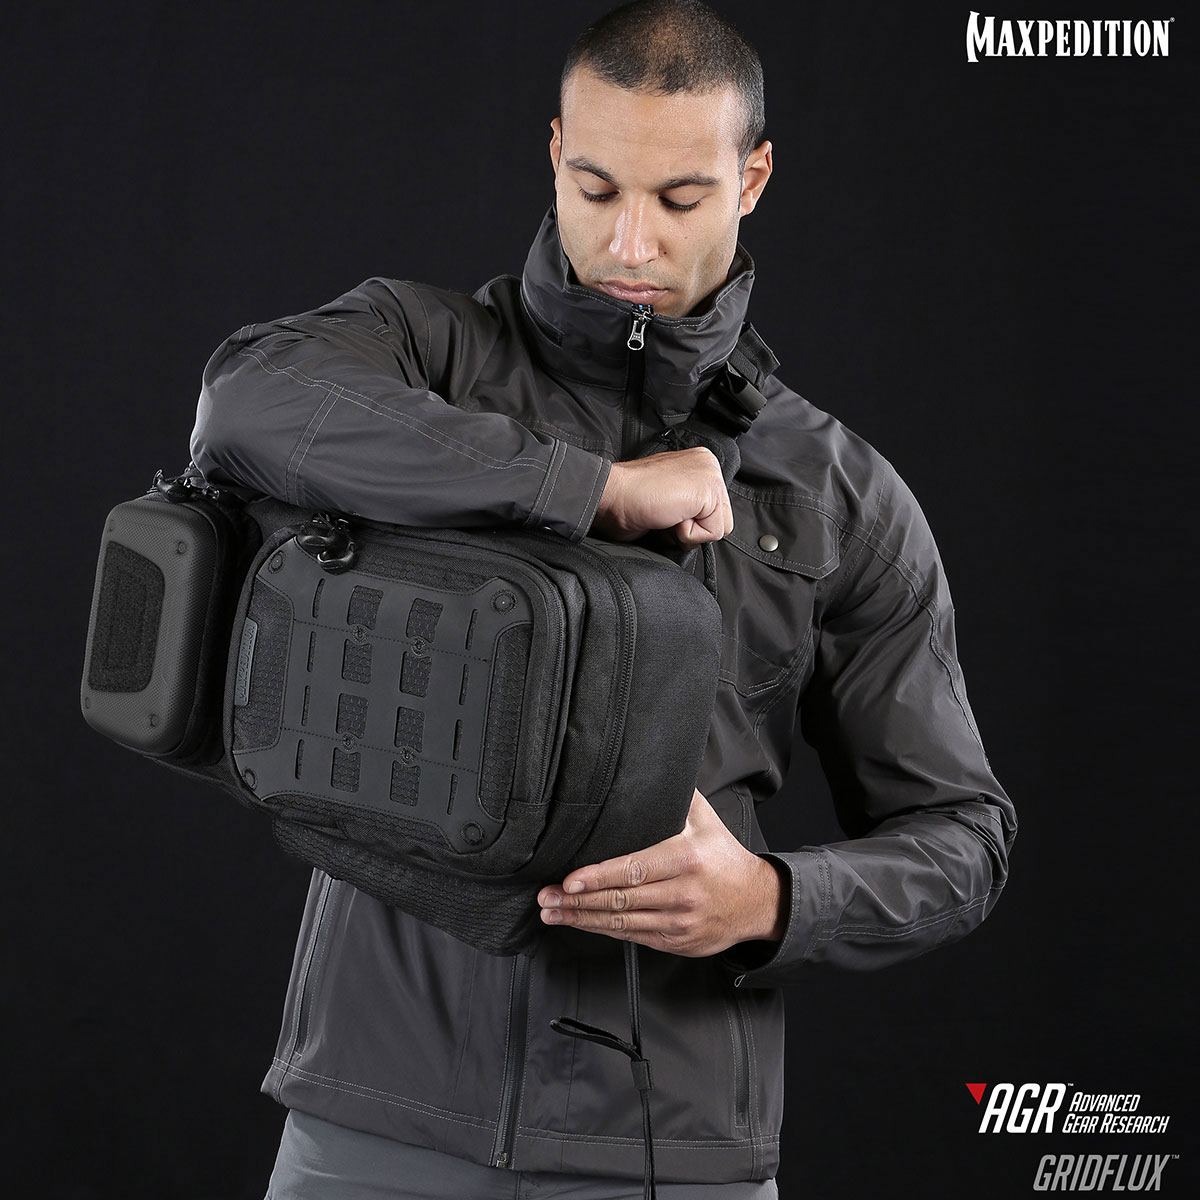 Maxpedition AGR Gridflux